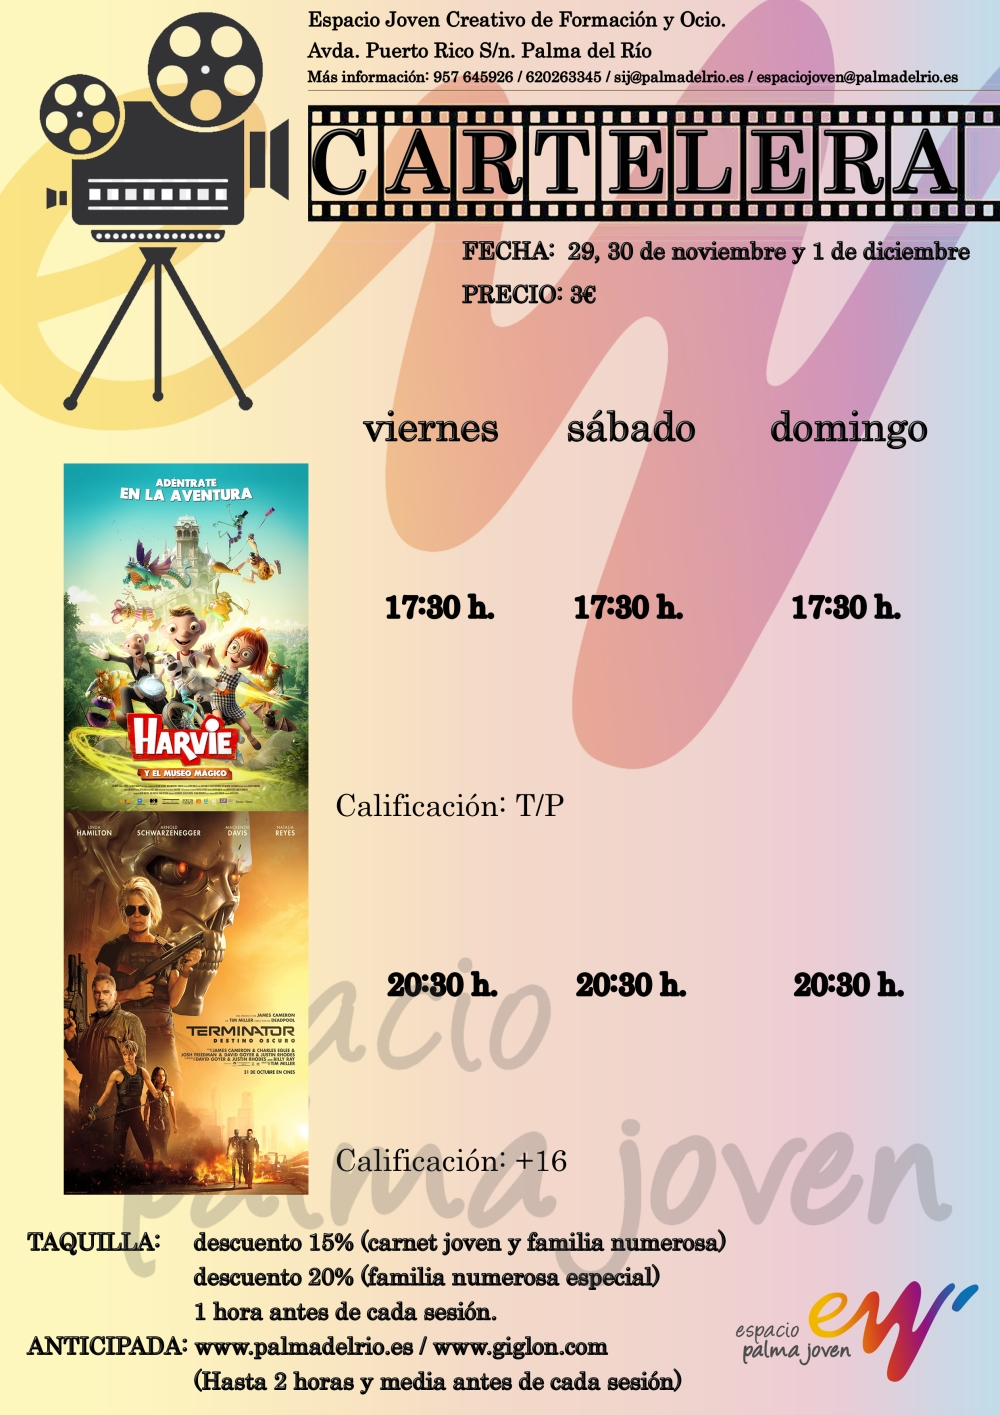 https://www.palmadelrio.es/sites/default/files/horario_cine_19.30_nov_y_1_dic_2.jpg